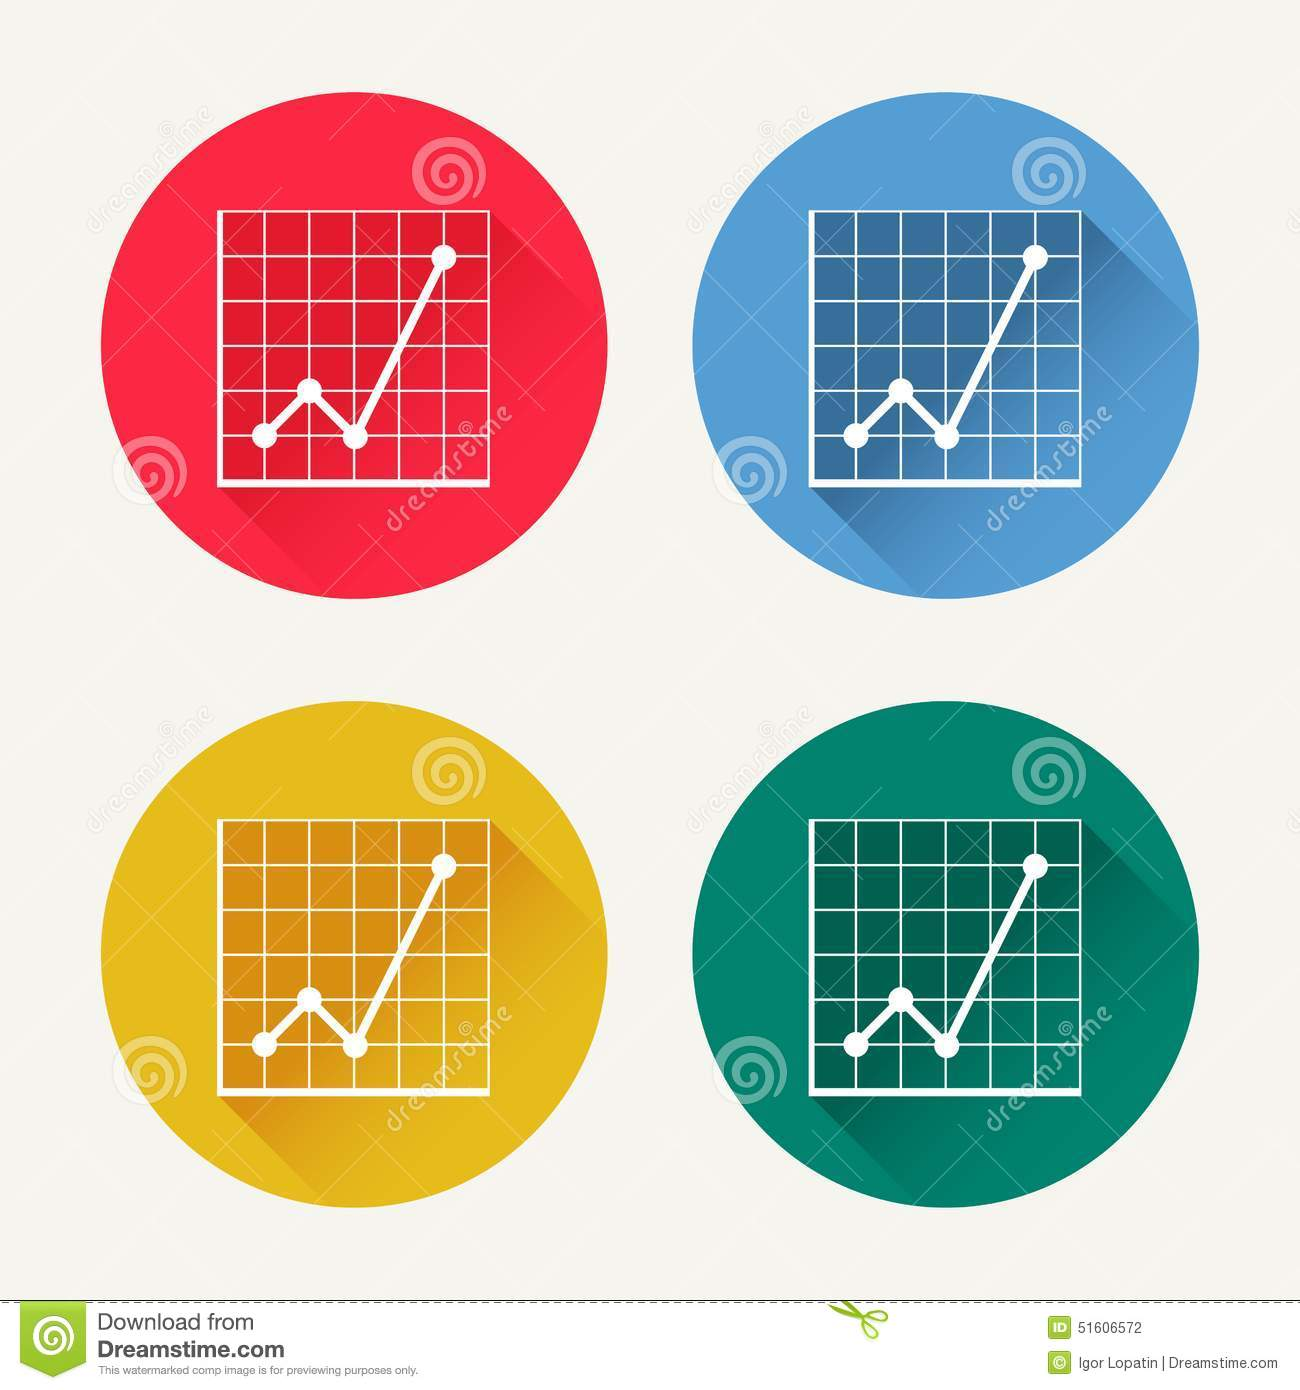 hight resolution of vector diagram icon set